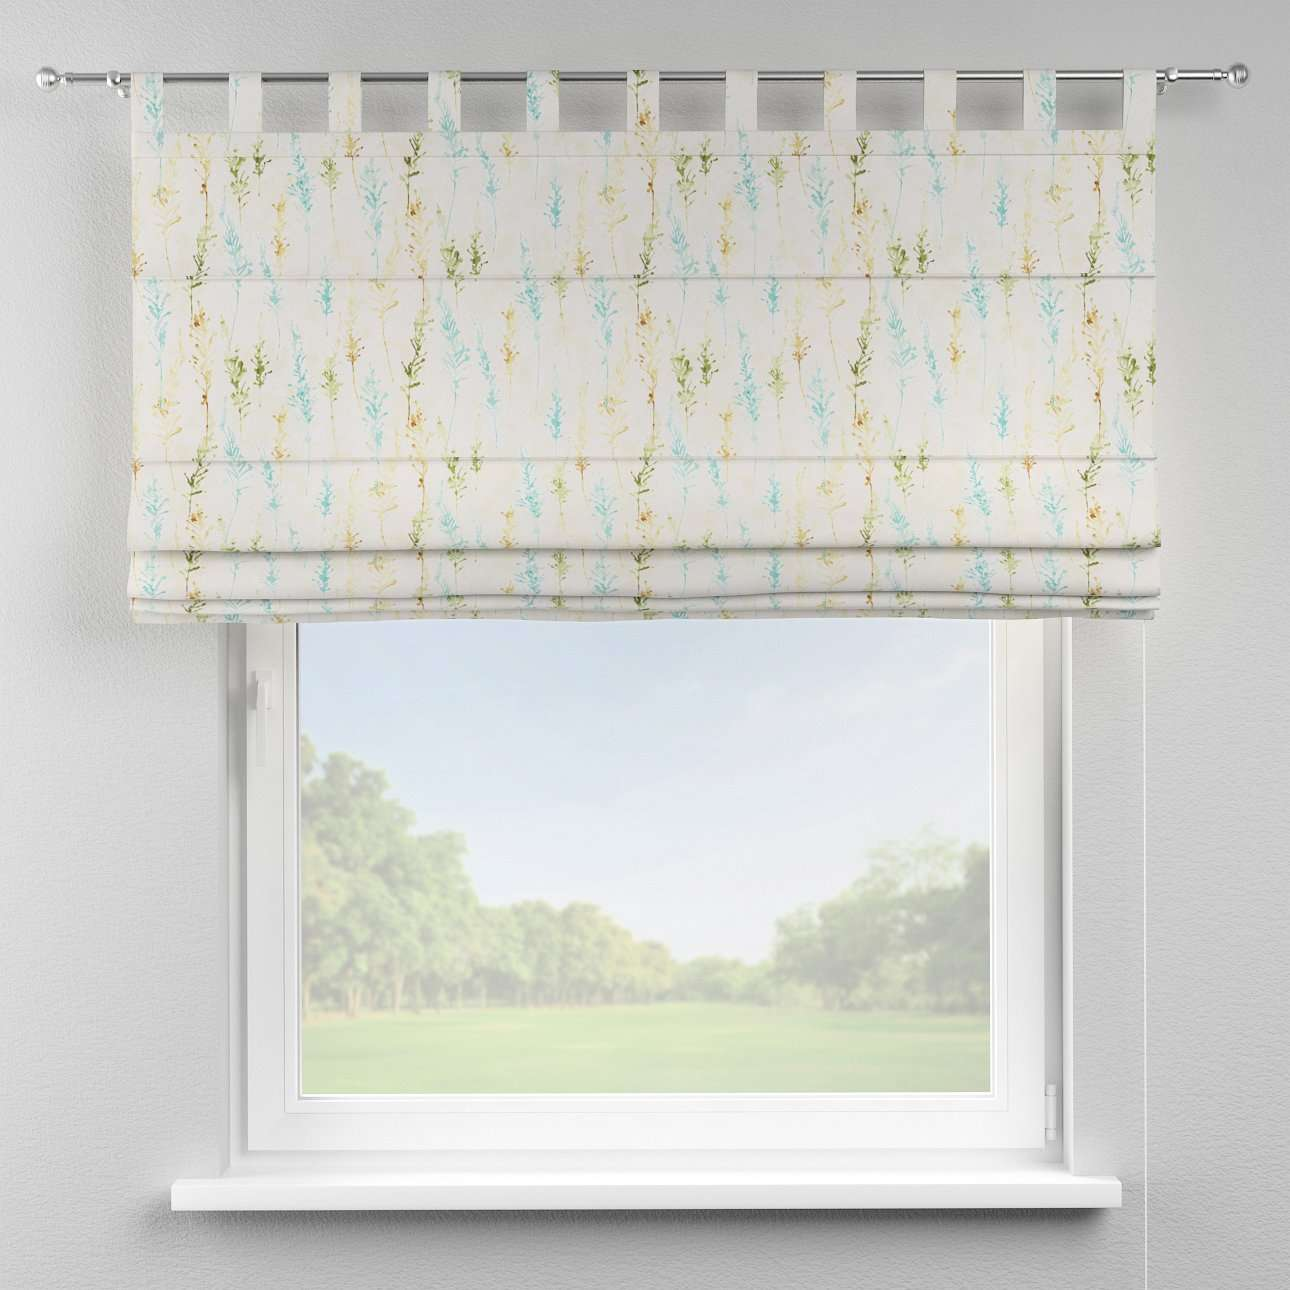 Verona tab top roman blind in collection Acapulco, fabric: 141-38